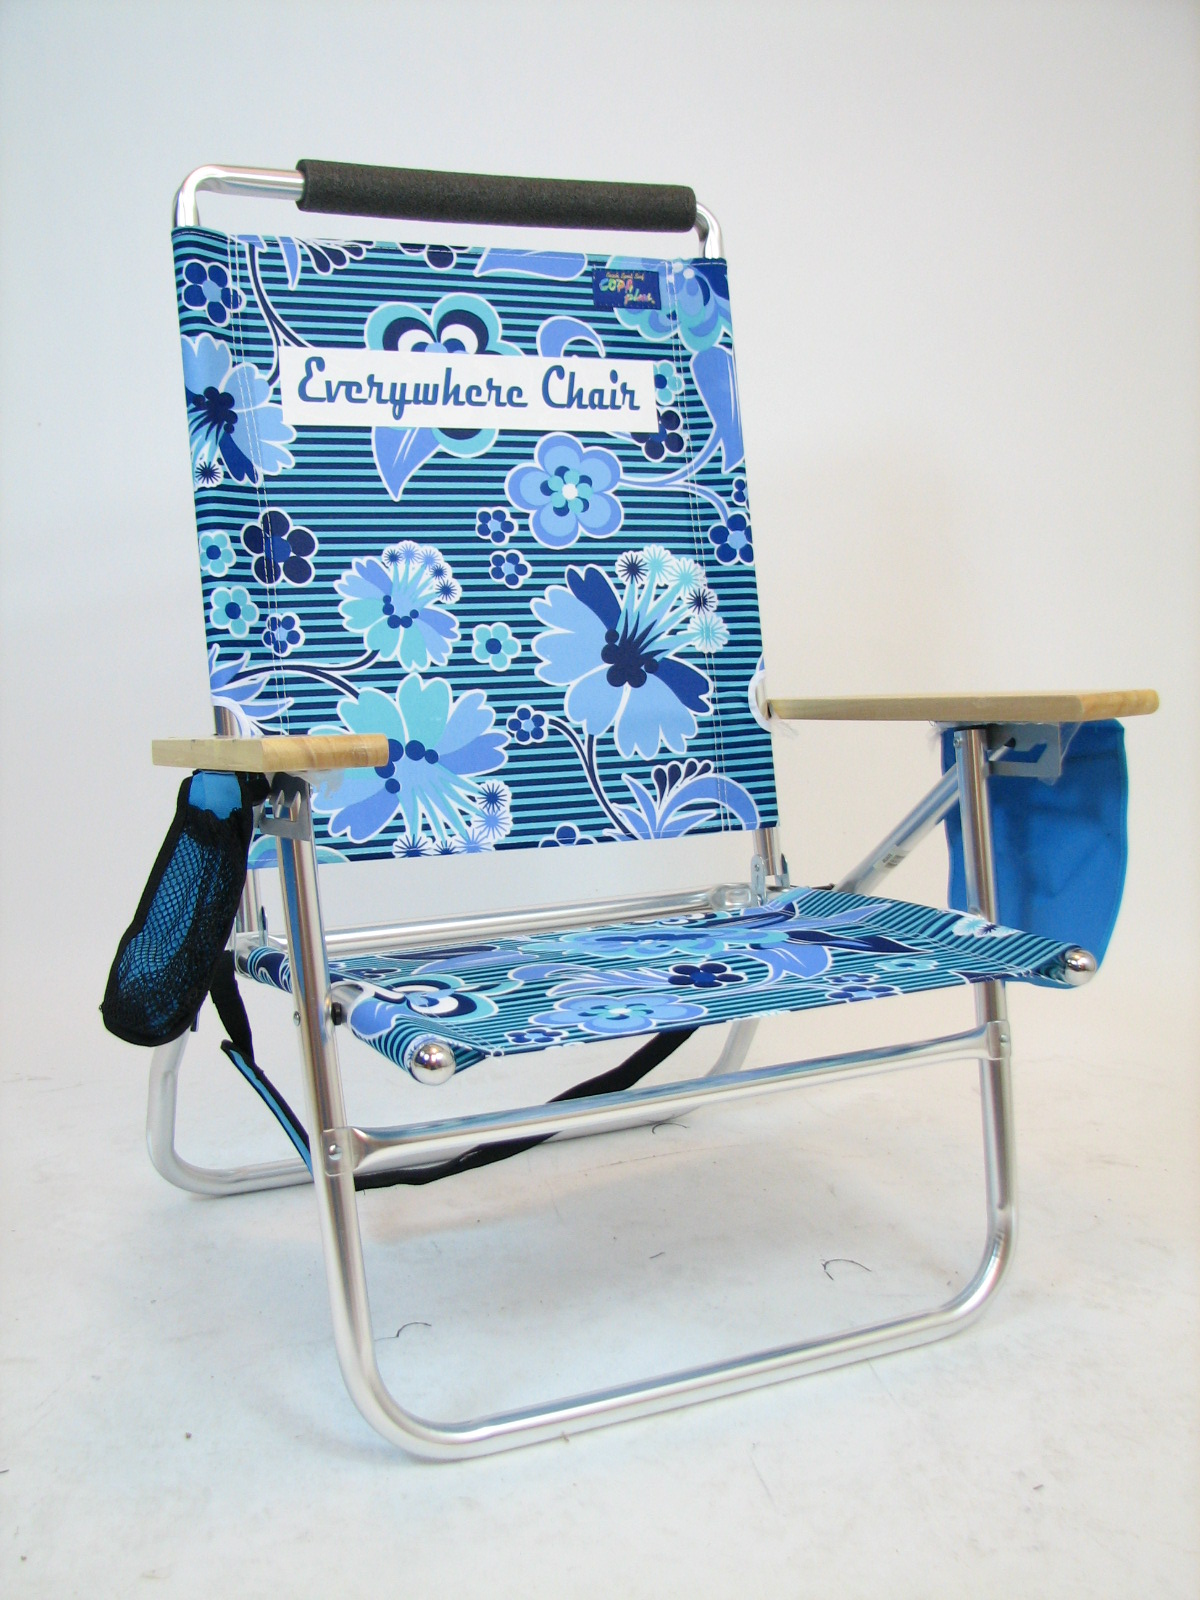 IMPRINTED Personalized Lazy Beach 3 Position Beach Chair by JGR Copa Personalized Chair Sale